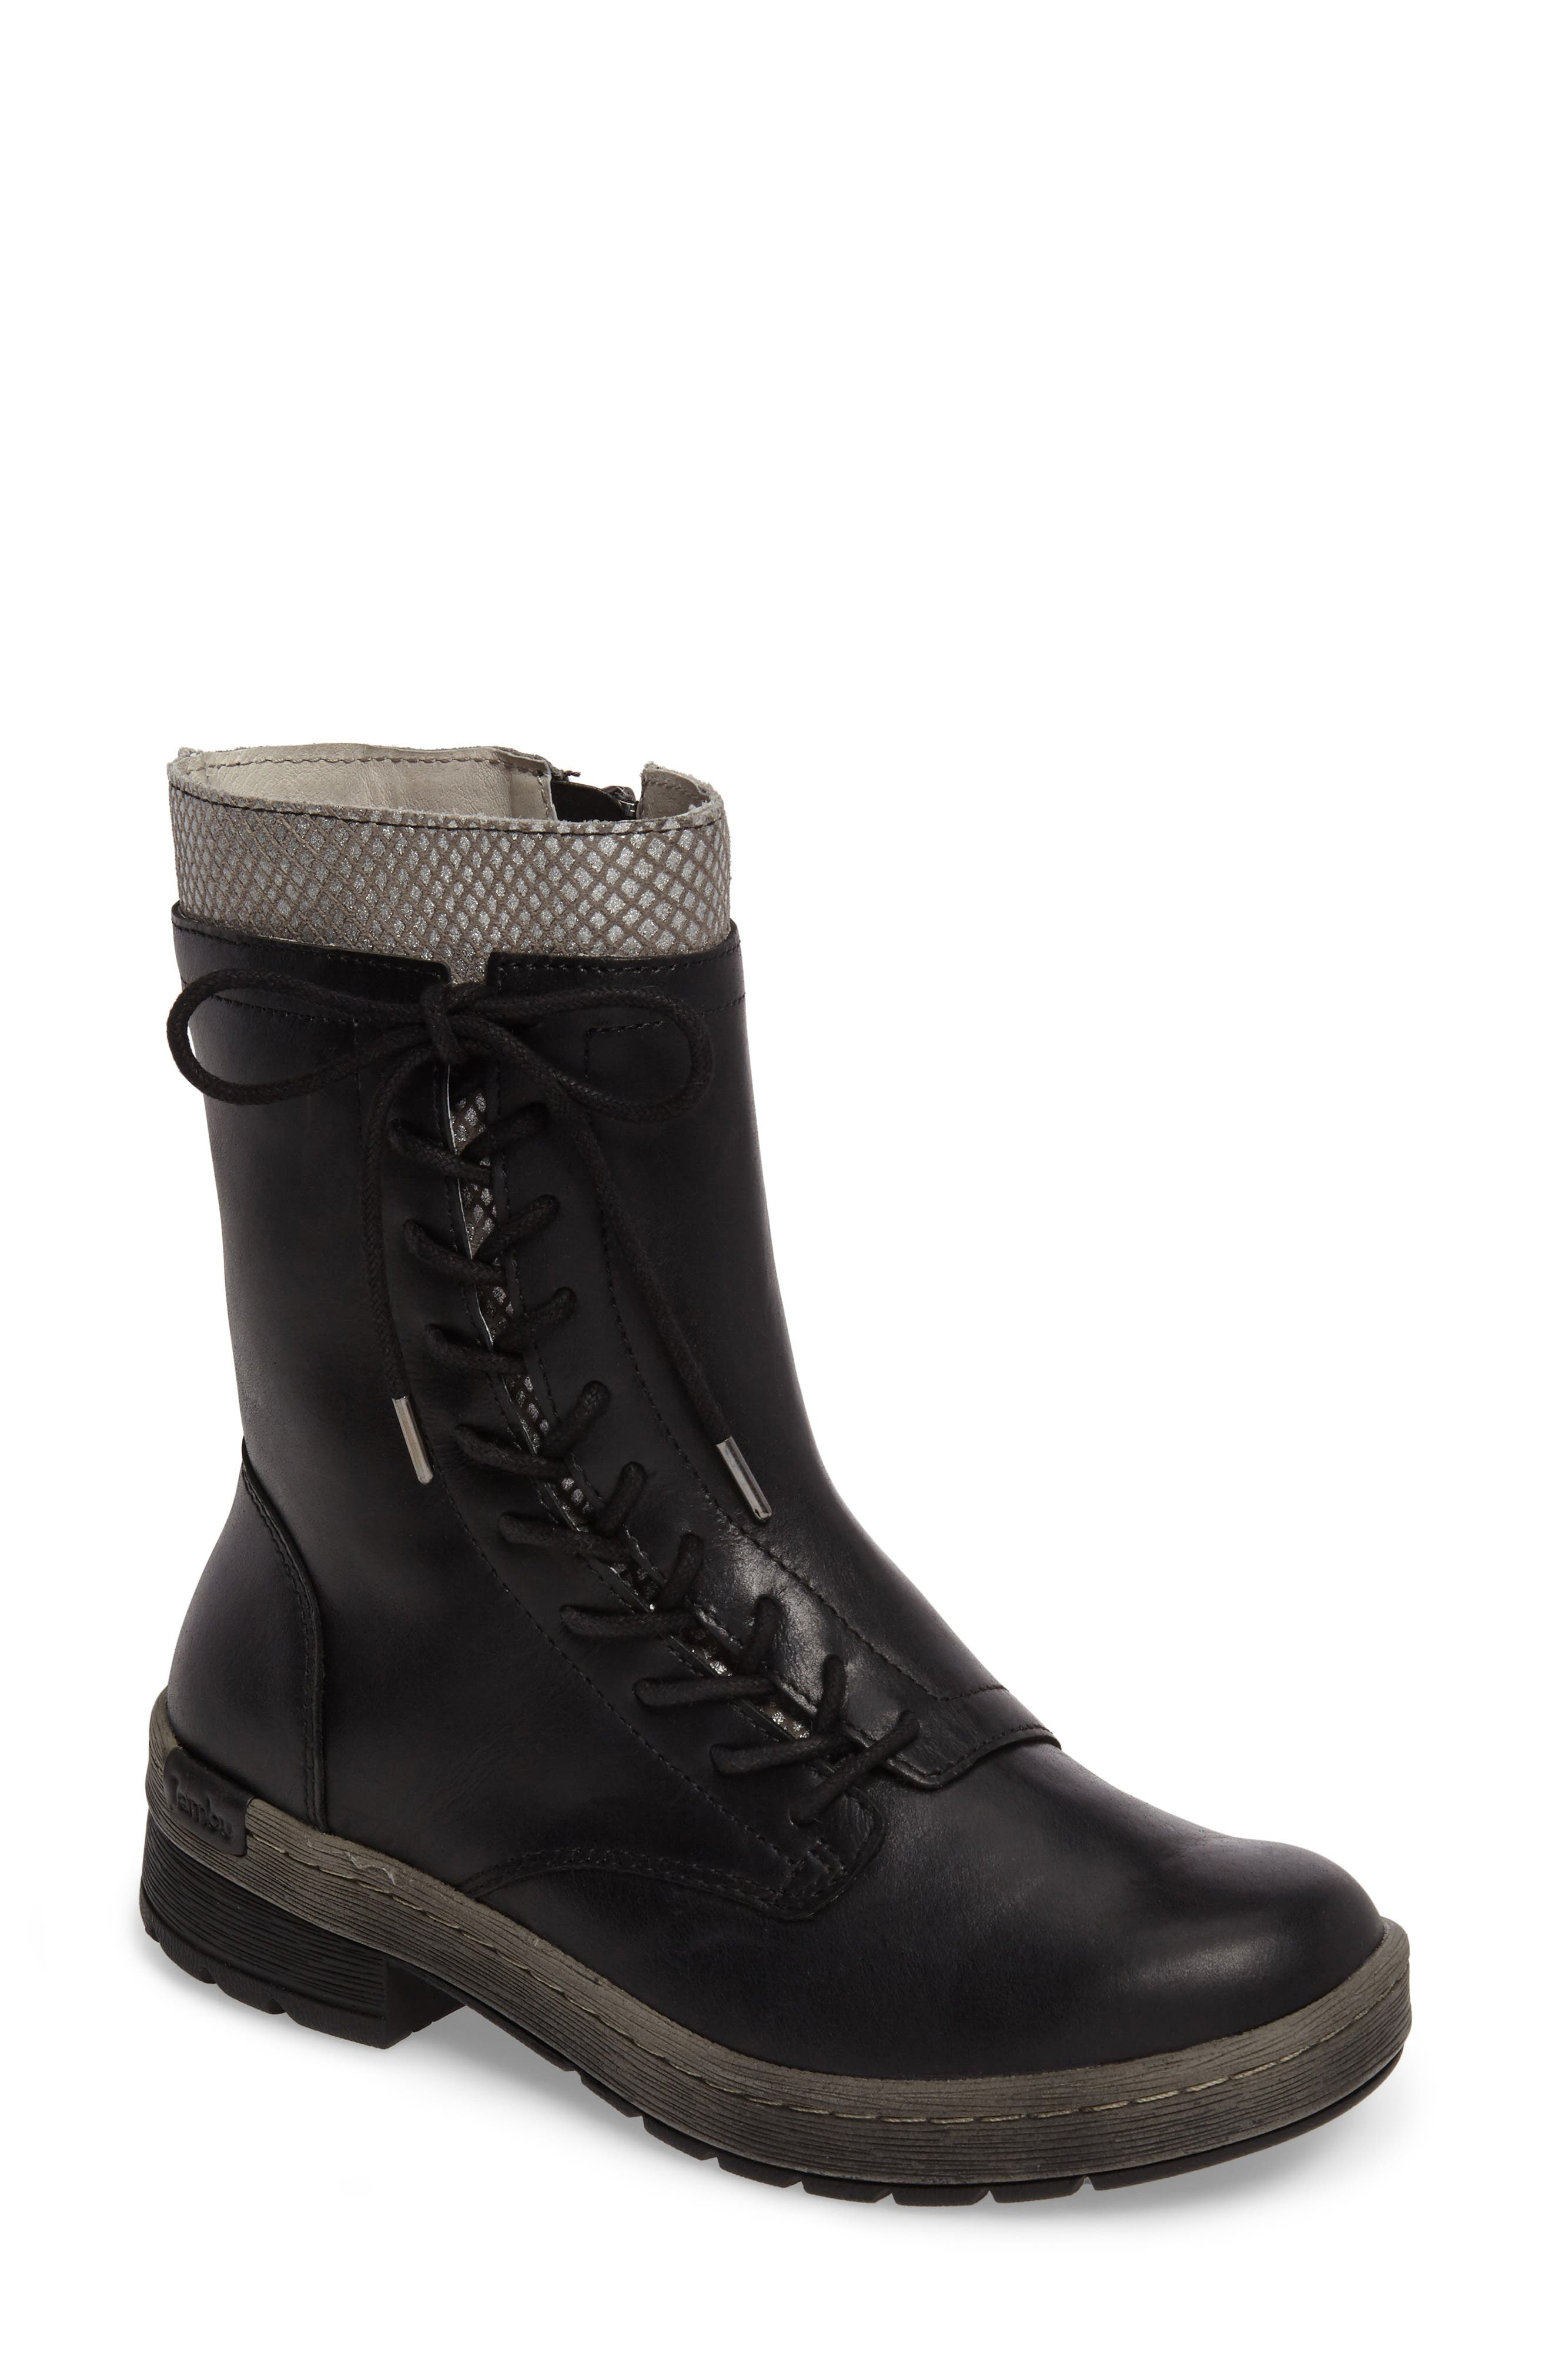 Chestnut Lace-Up Water Resistant Boot,                             Main thumbnail 1, color,                             001